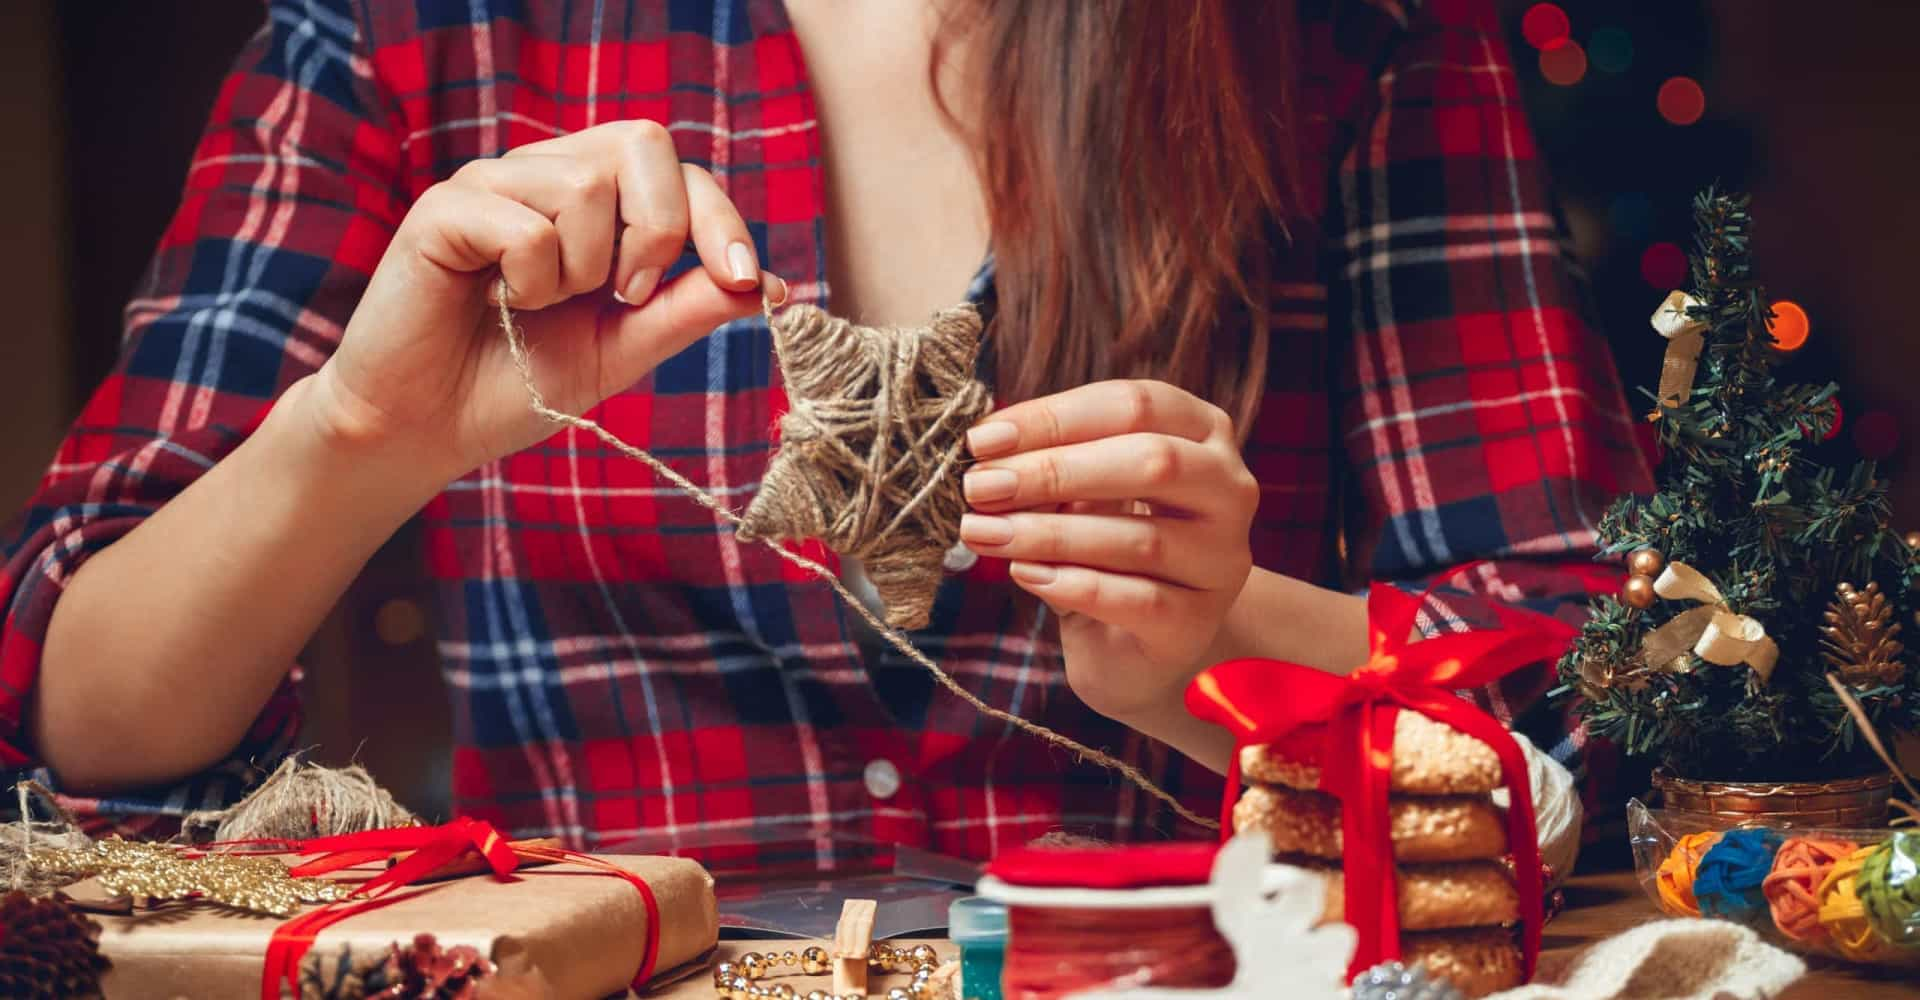 DIY Christmas gifts everyone will love